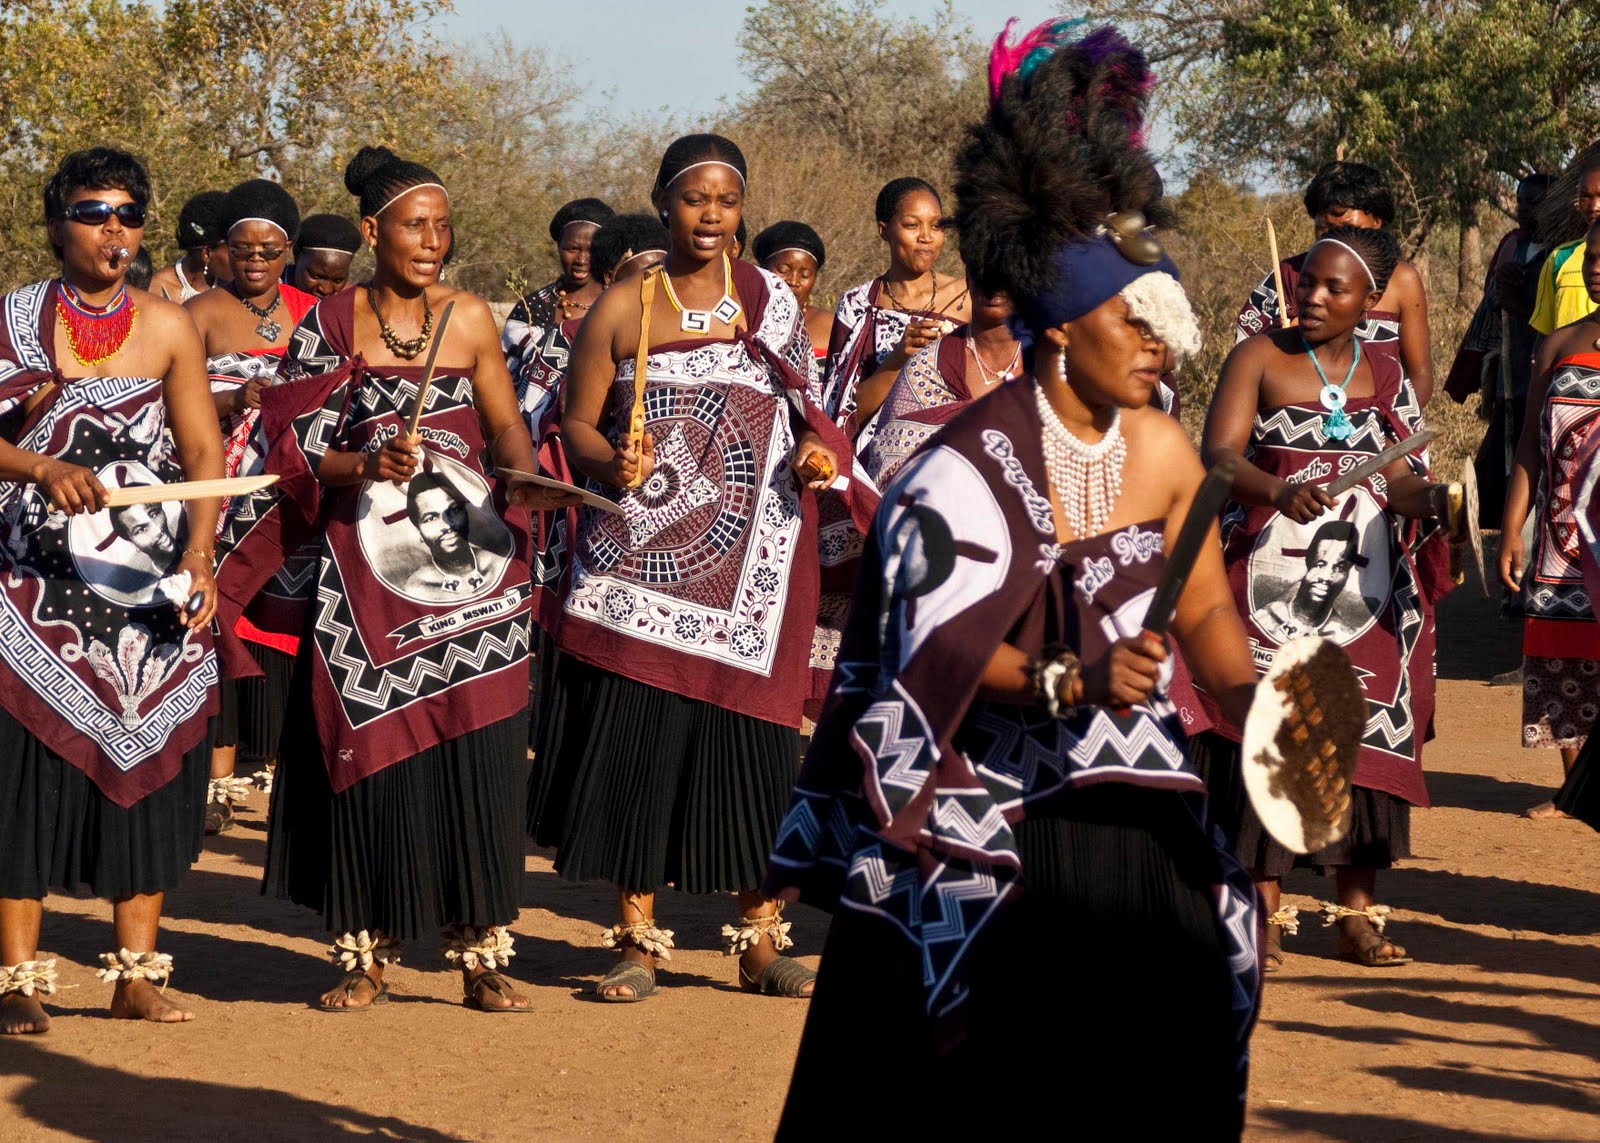 an analysis of cultural adjustments in african wedding traditions Society and culture influence the words that we speak, and the words that we  speak  to the champagne toast ritual at some wedding ceremonies), and  reintroduced  culturally influenced differences in language and meaning can  lead to some  for example, african american women use certain verbal  communication.